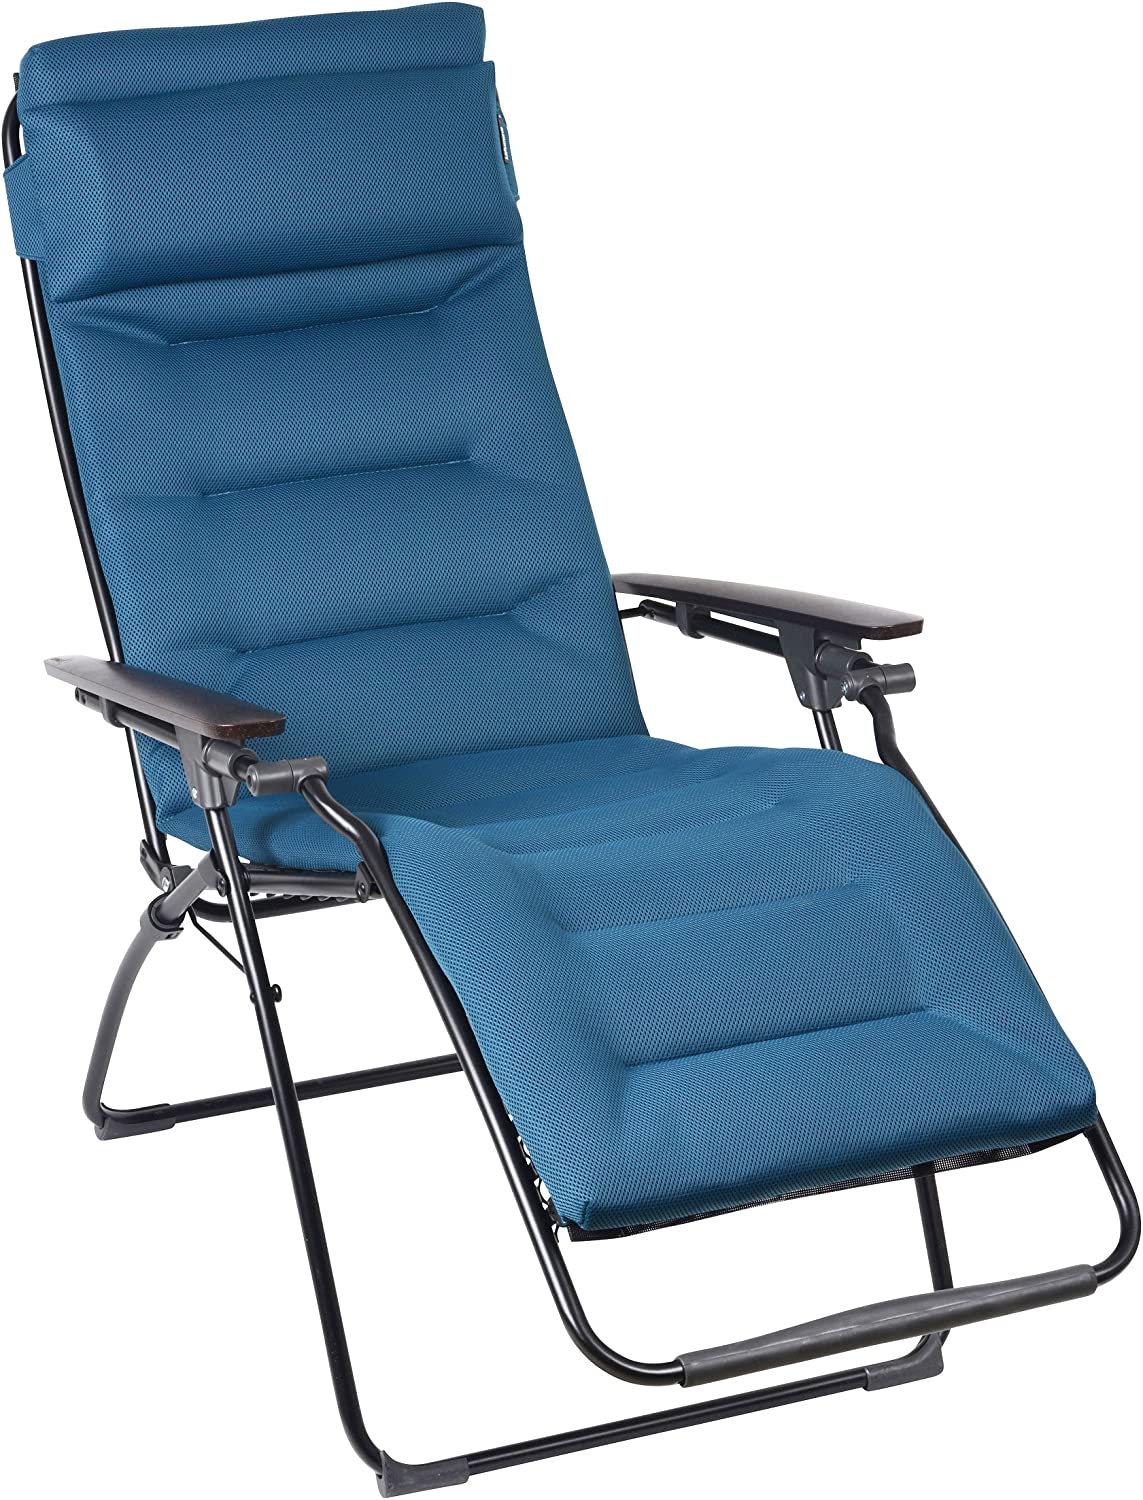 Lafuma Futura Air Comfort Padded Zero Gravity Chair - Coral Blue